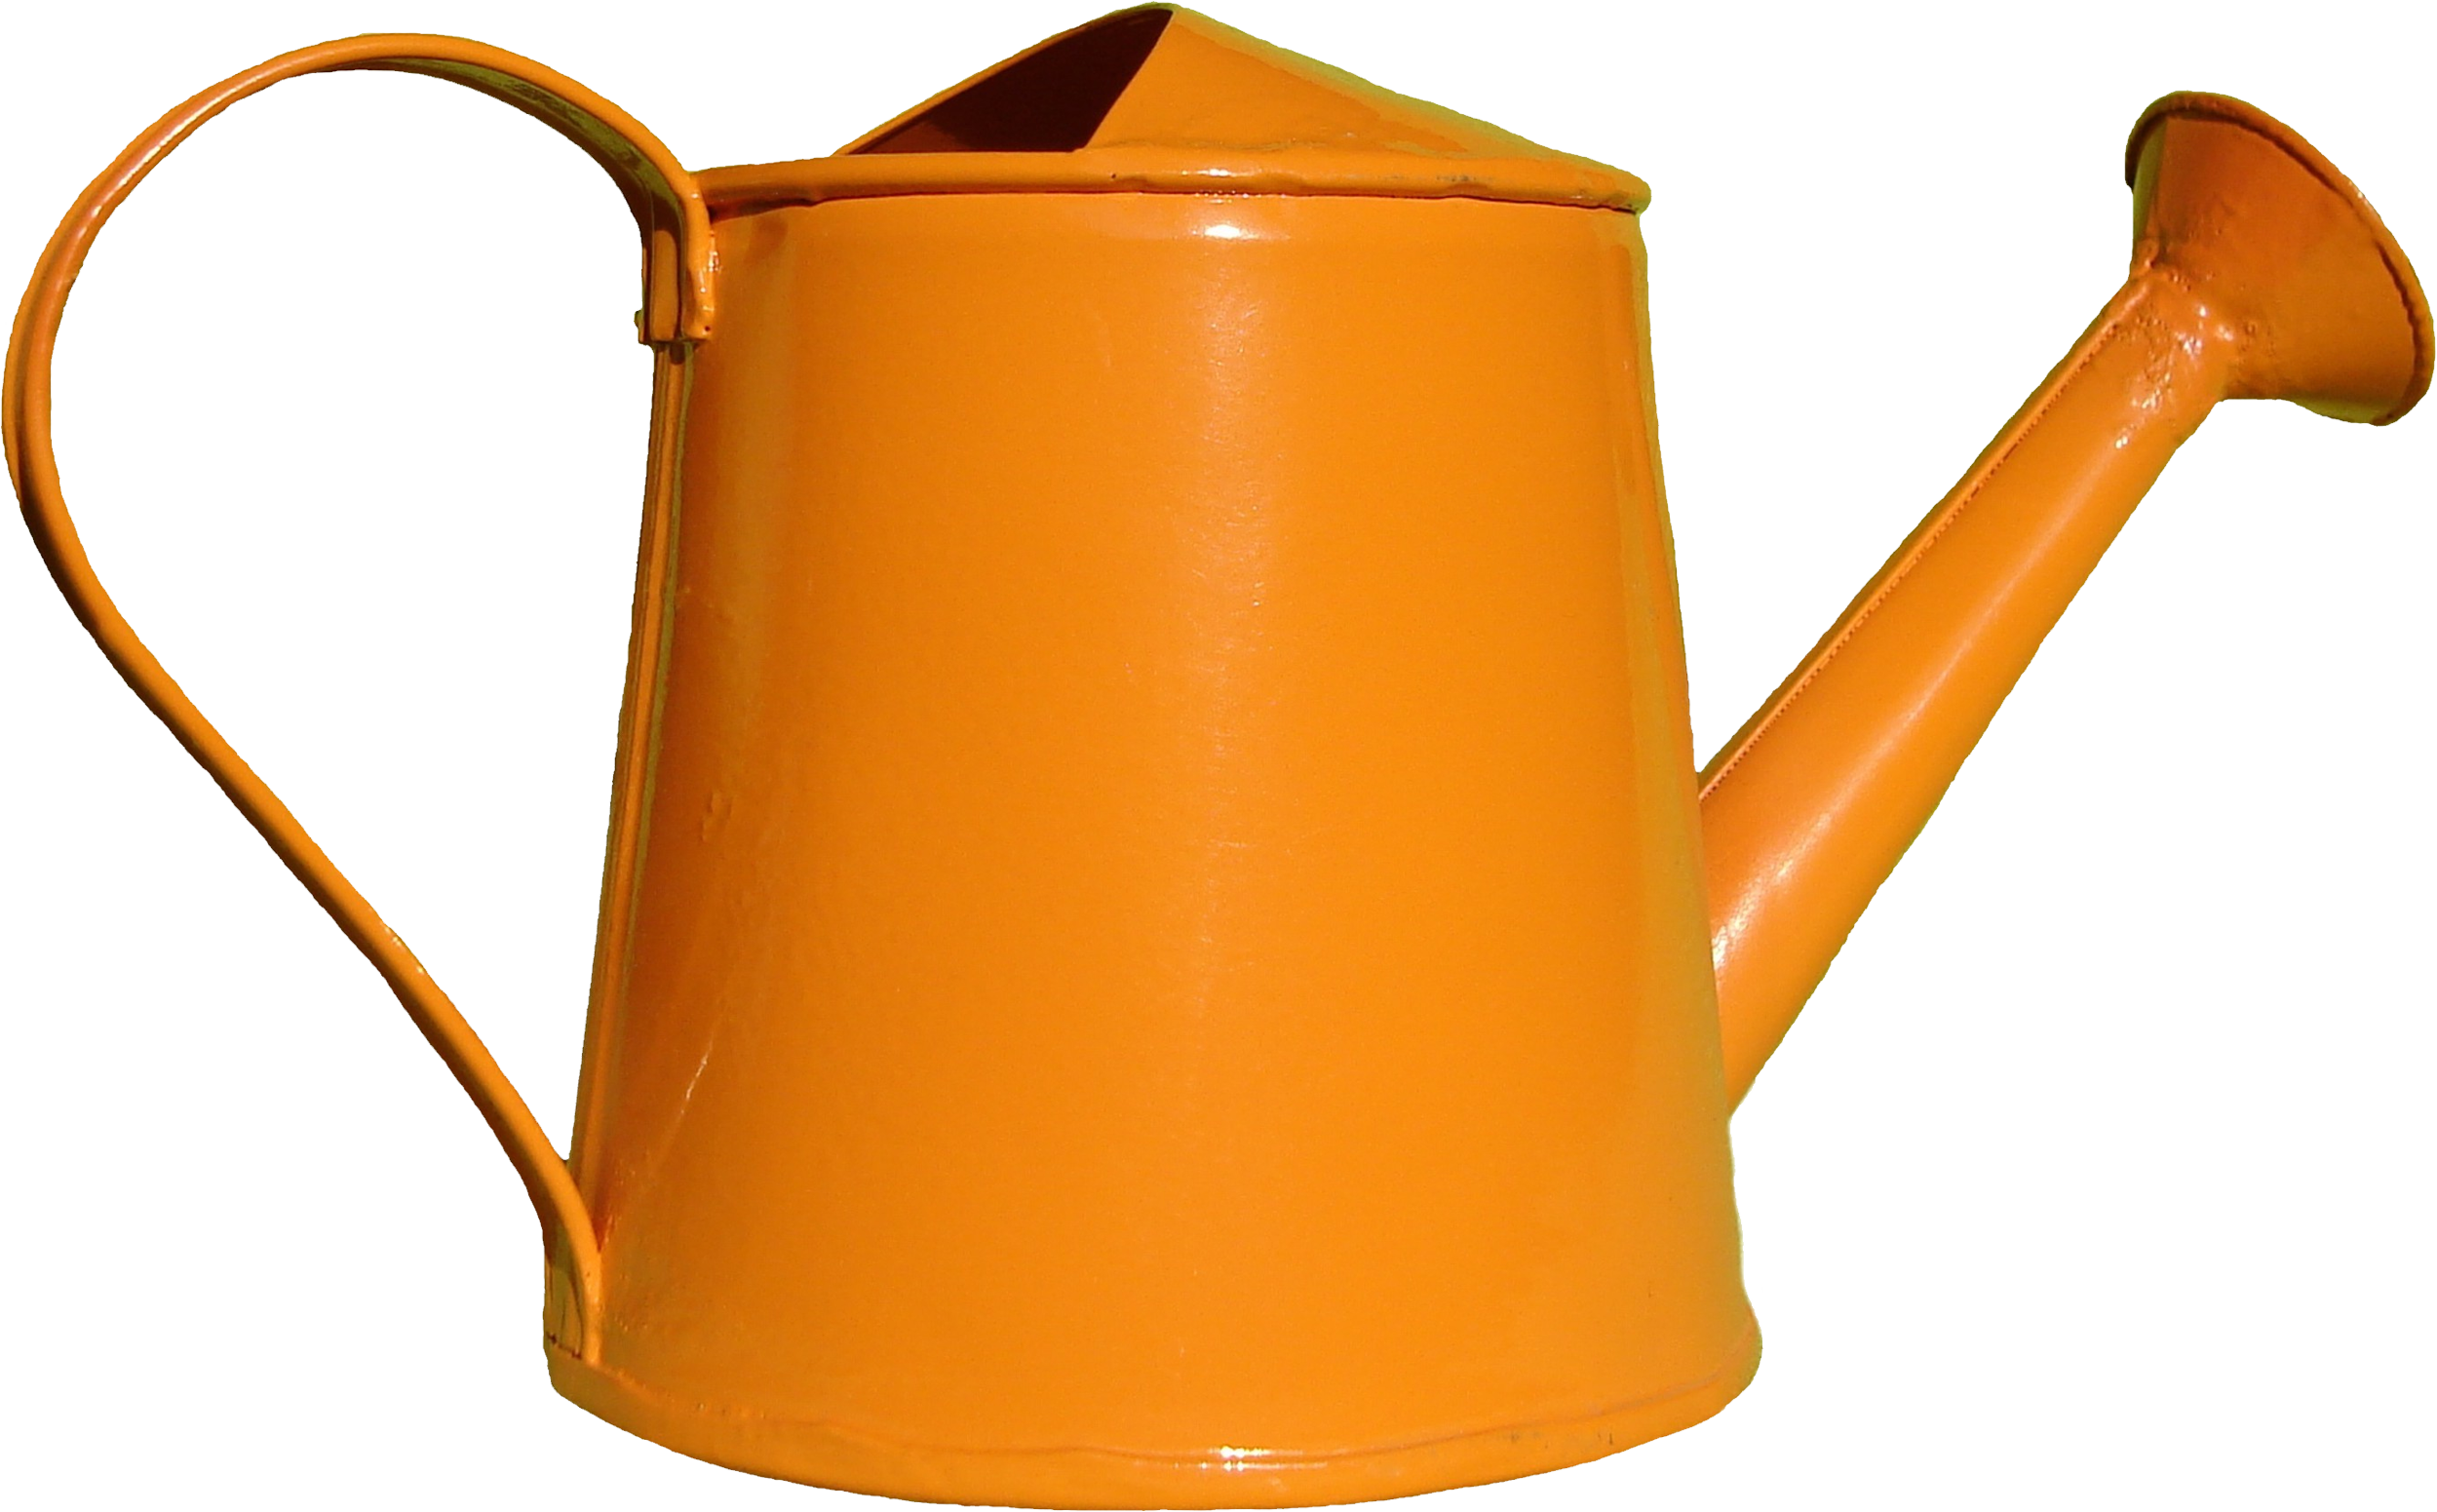 0 107905 7fcfaee0 Orig Png 2500 1551 Watering Can Canning Flower Clipart